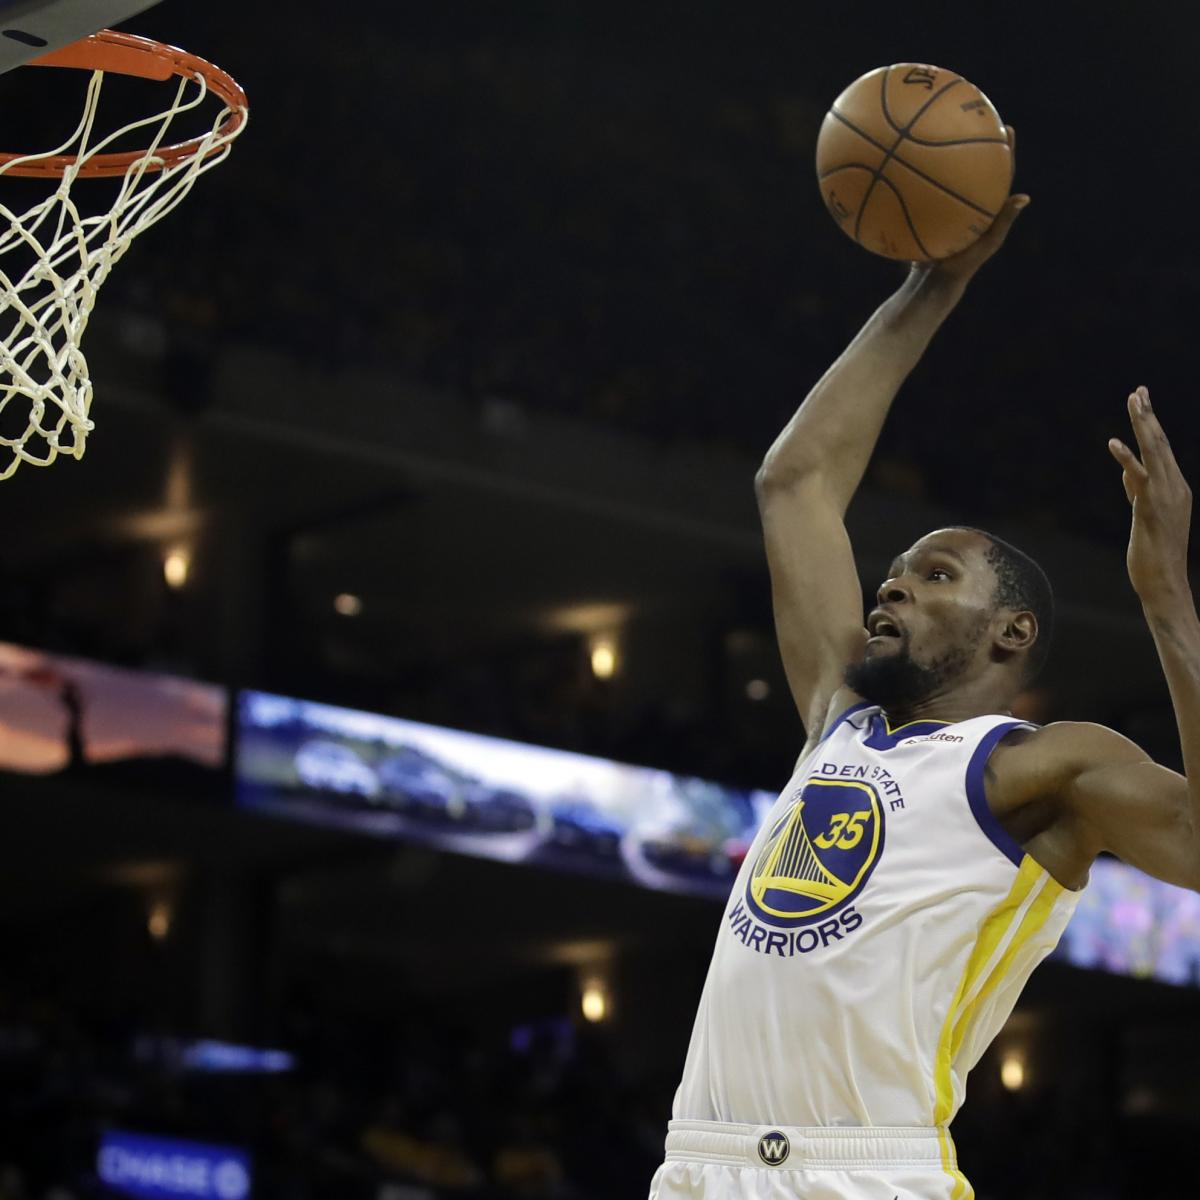 Blazers Injury Report: Report: Warriors' Kevin Durant Ruled Out For Game 2 Vs